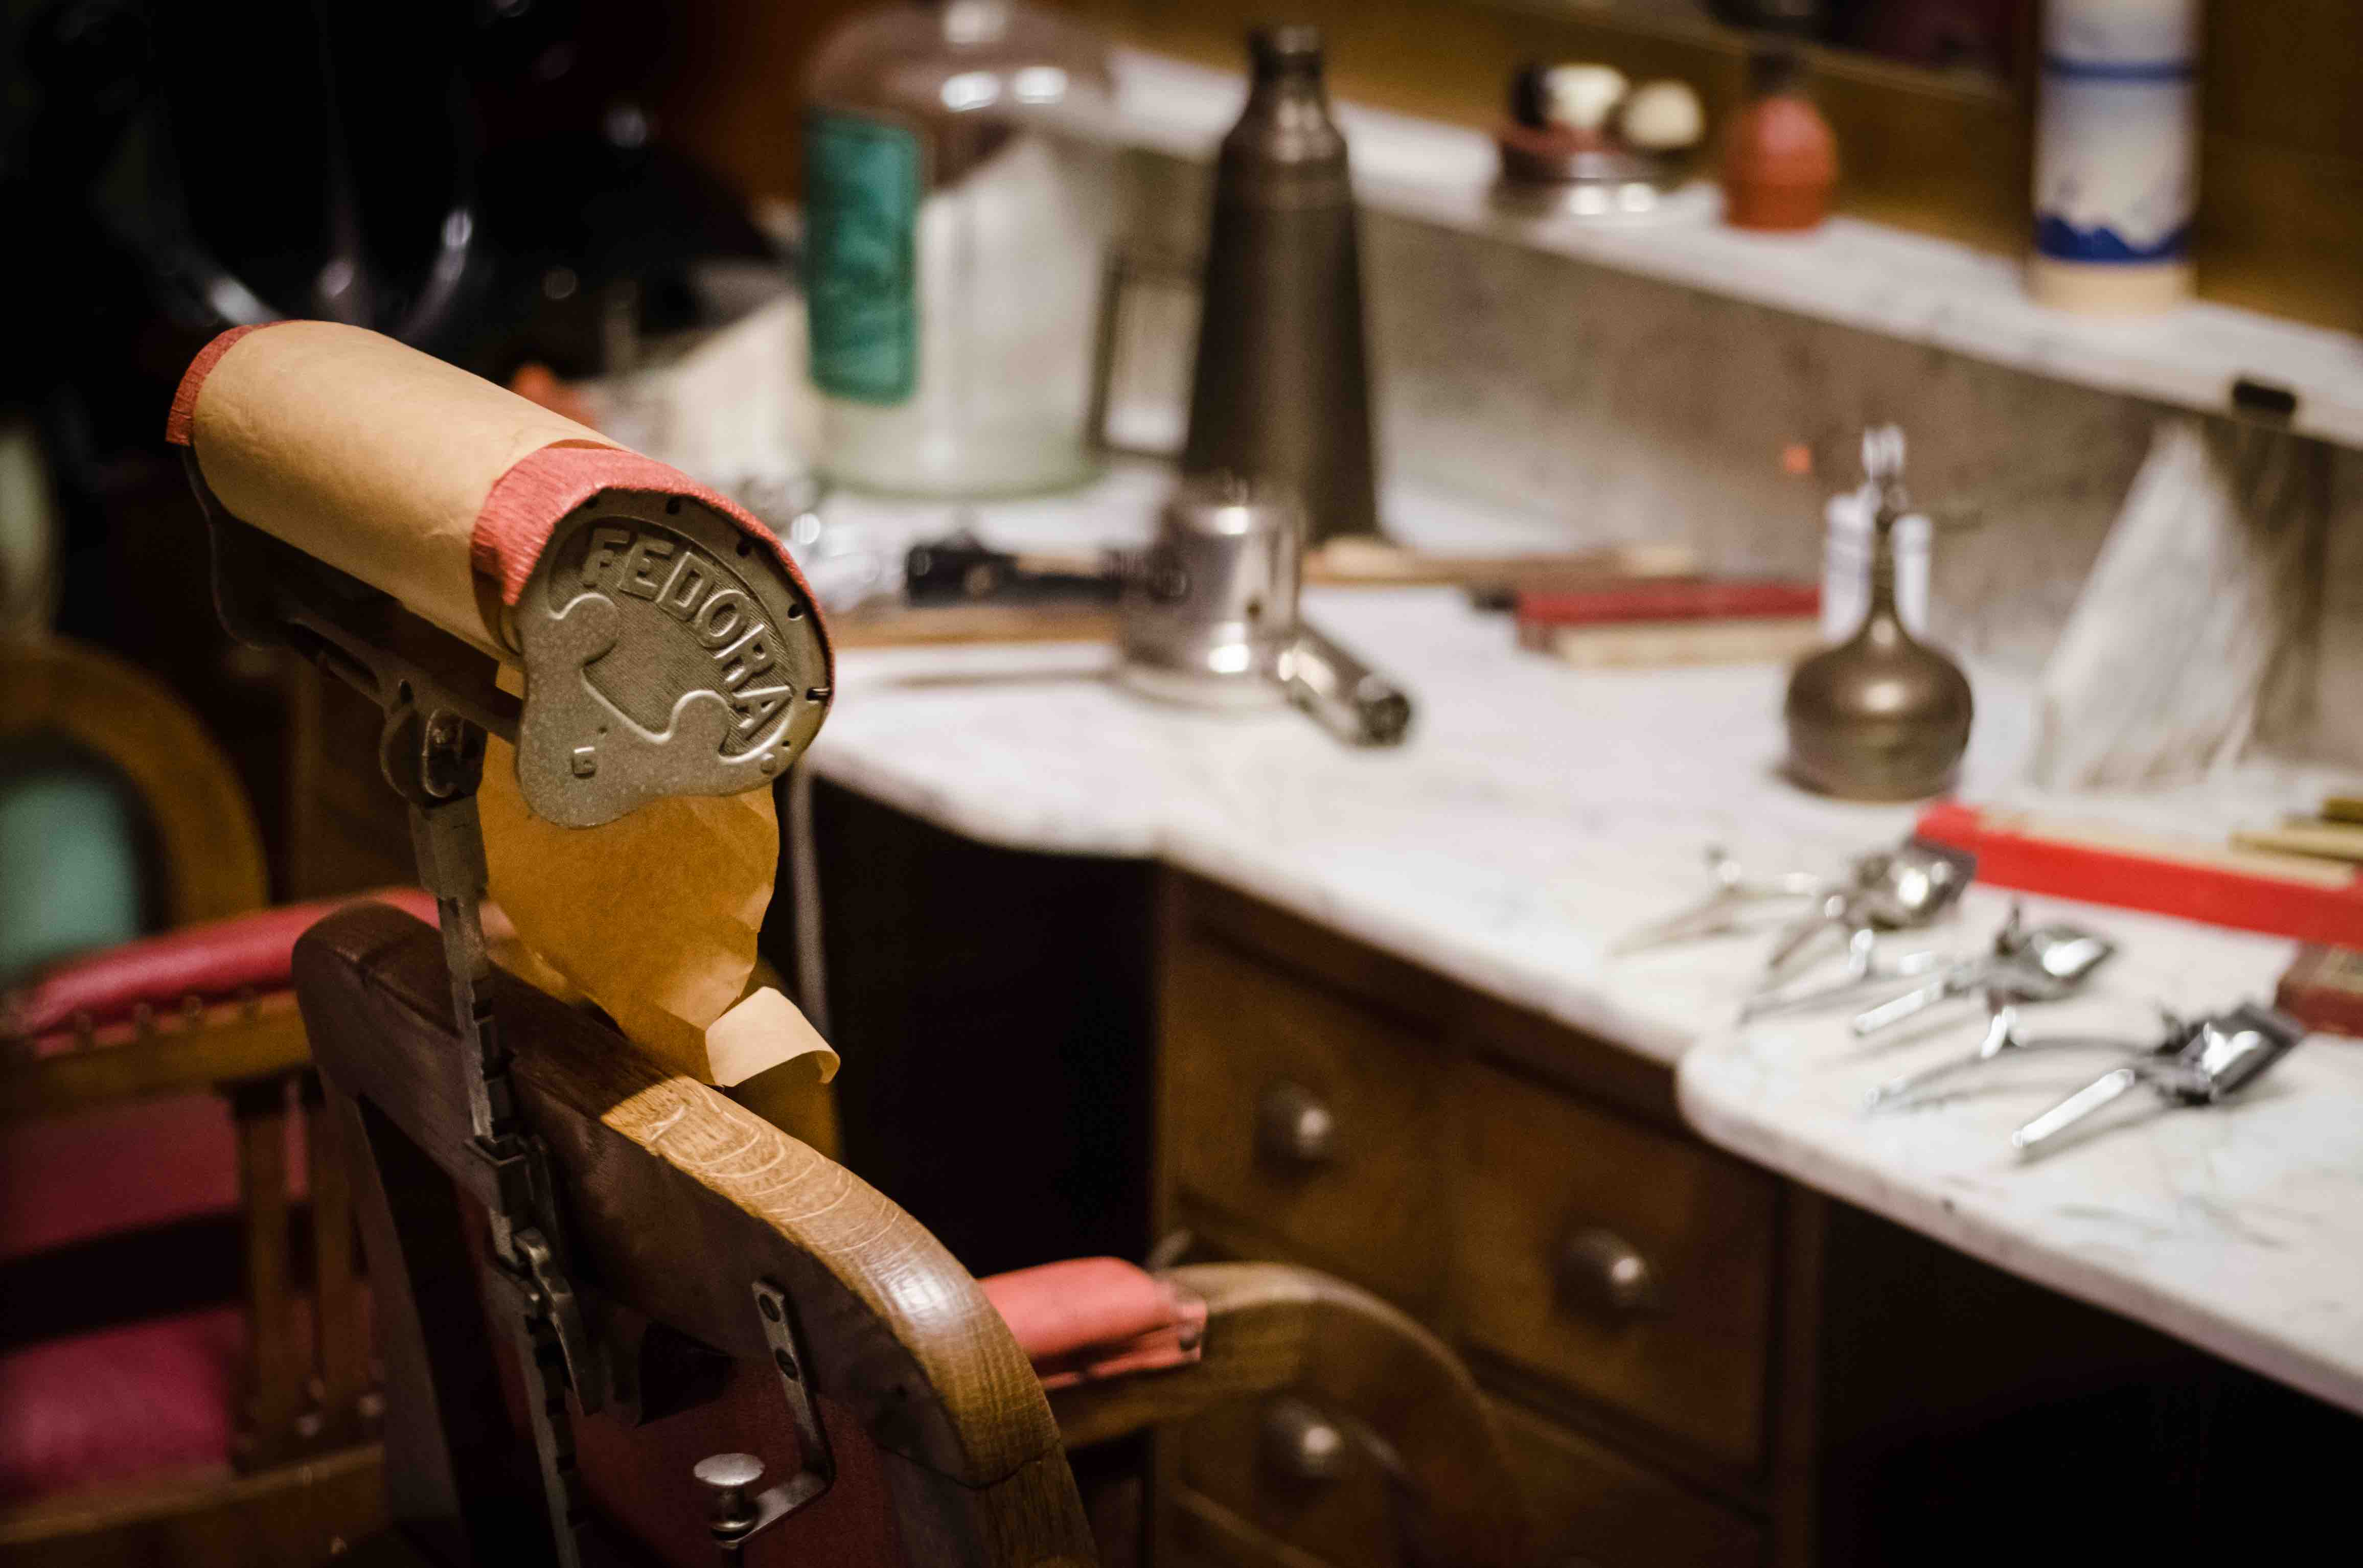 vintage barbers chair, razors and brushes